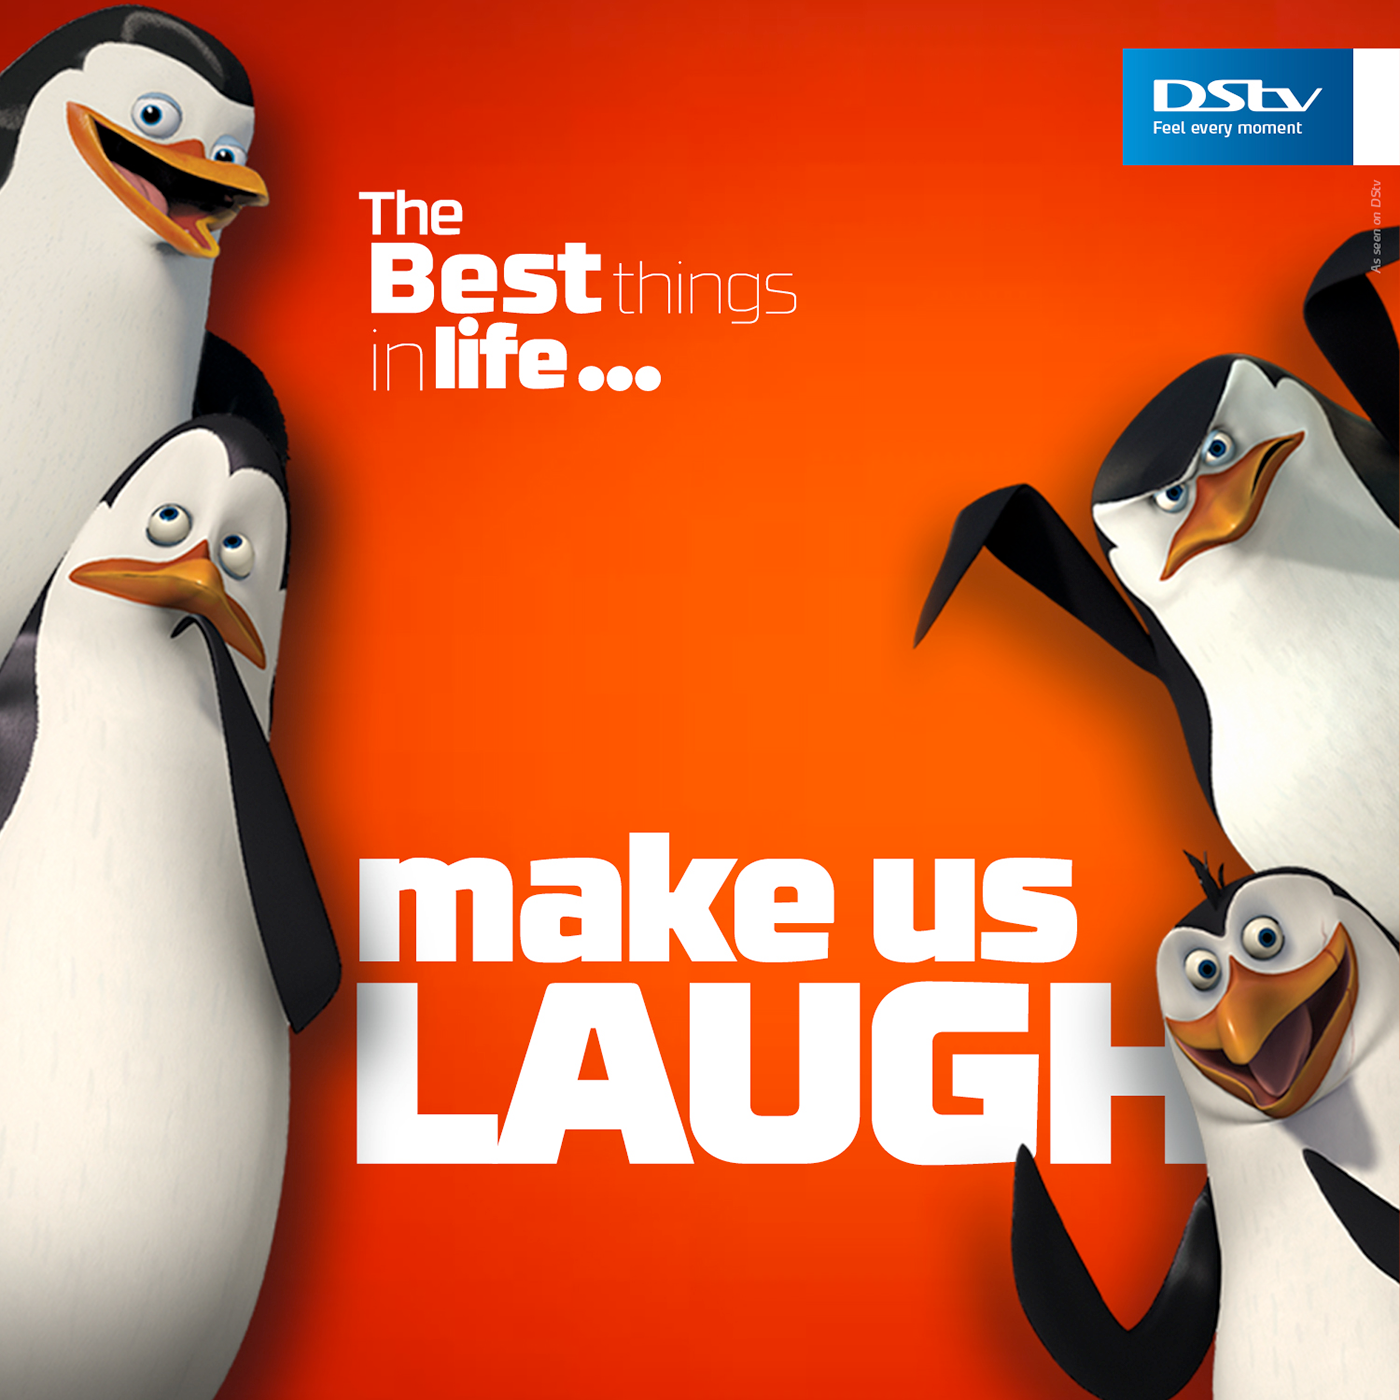 DStv / The Best Things In Life... On Behance